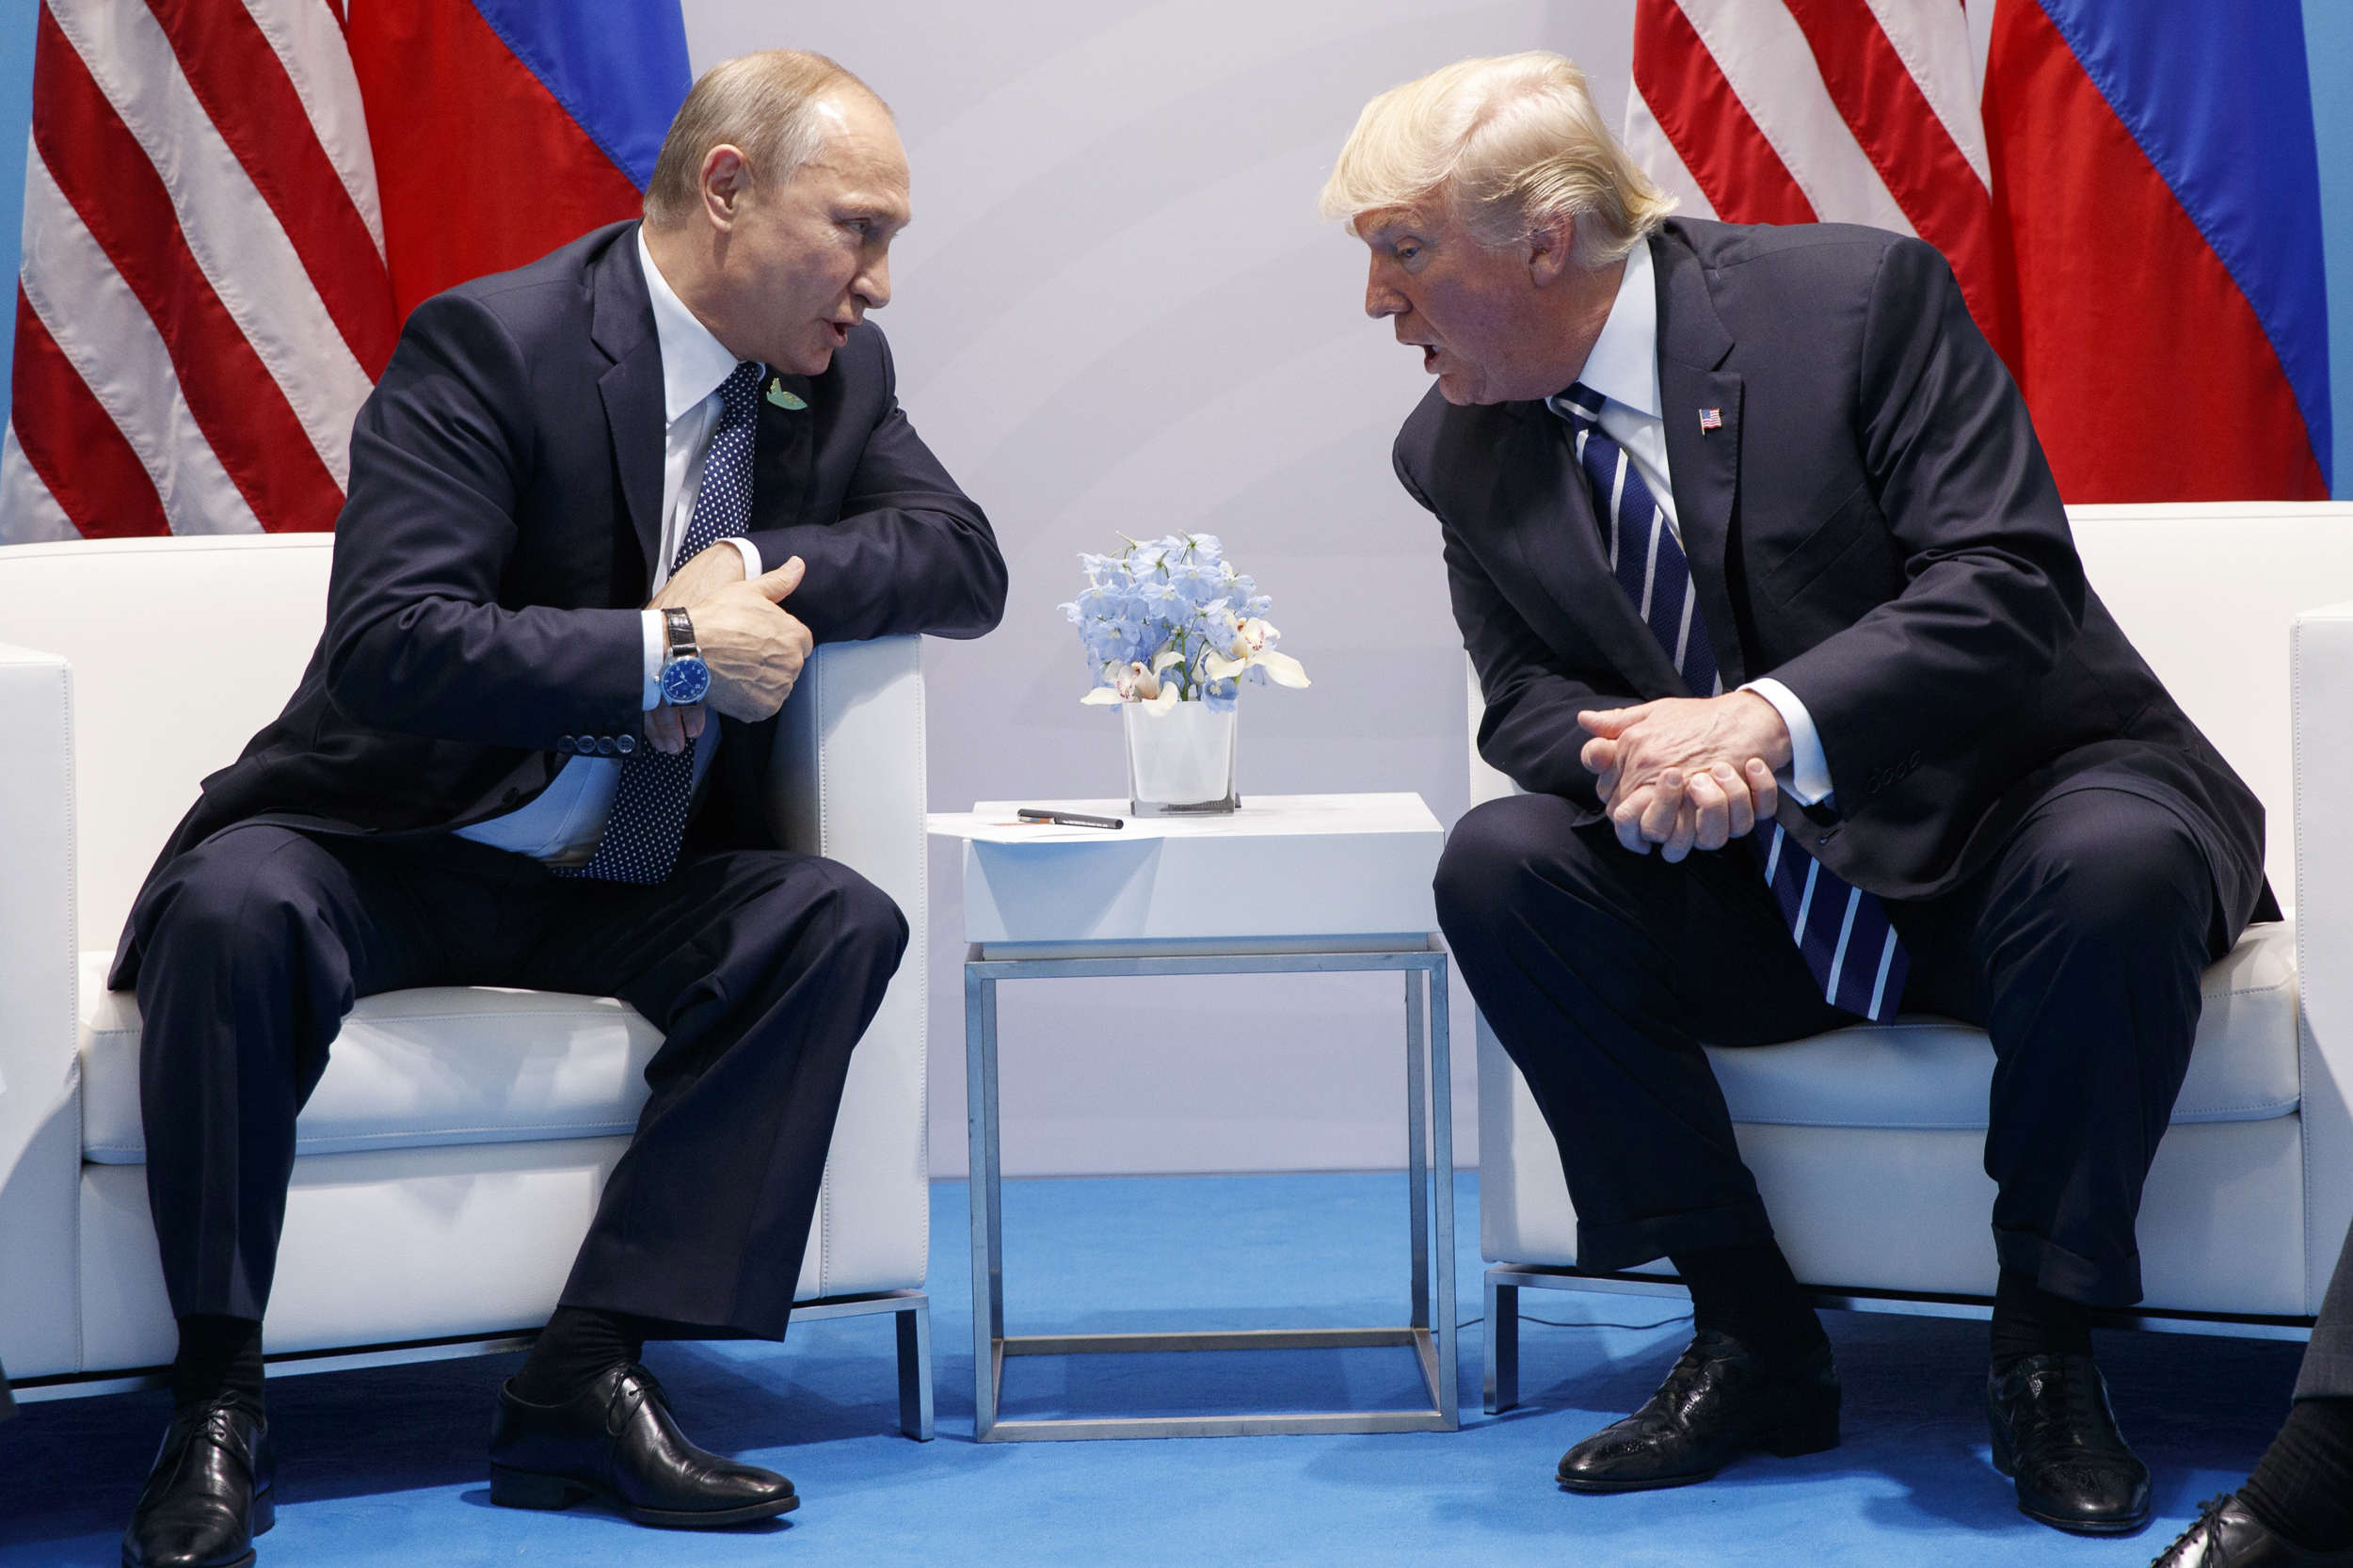 Putin-knows-exactly-how-to-manipulate-Trump.-That's-why-he's-so-dangerous.